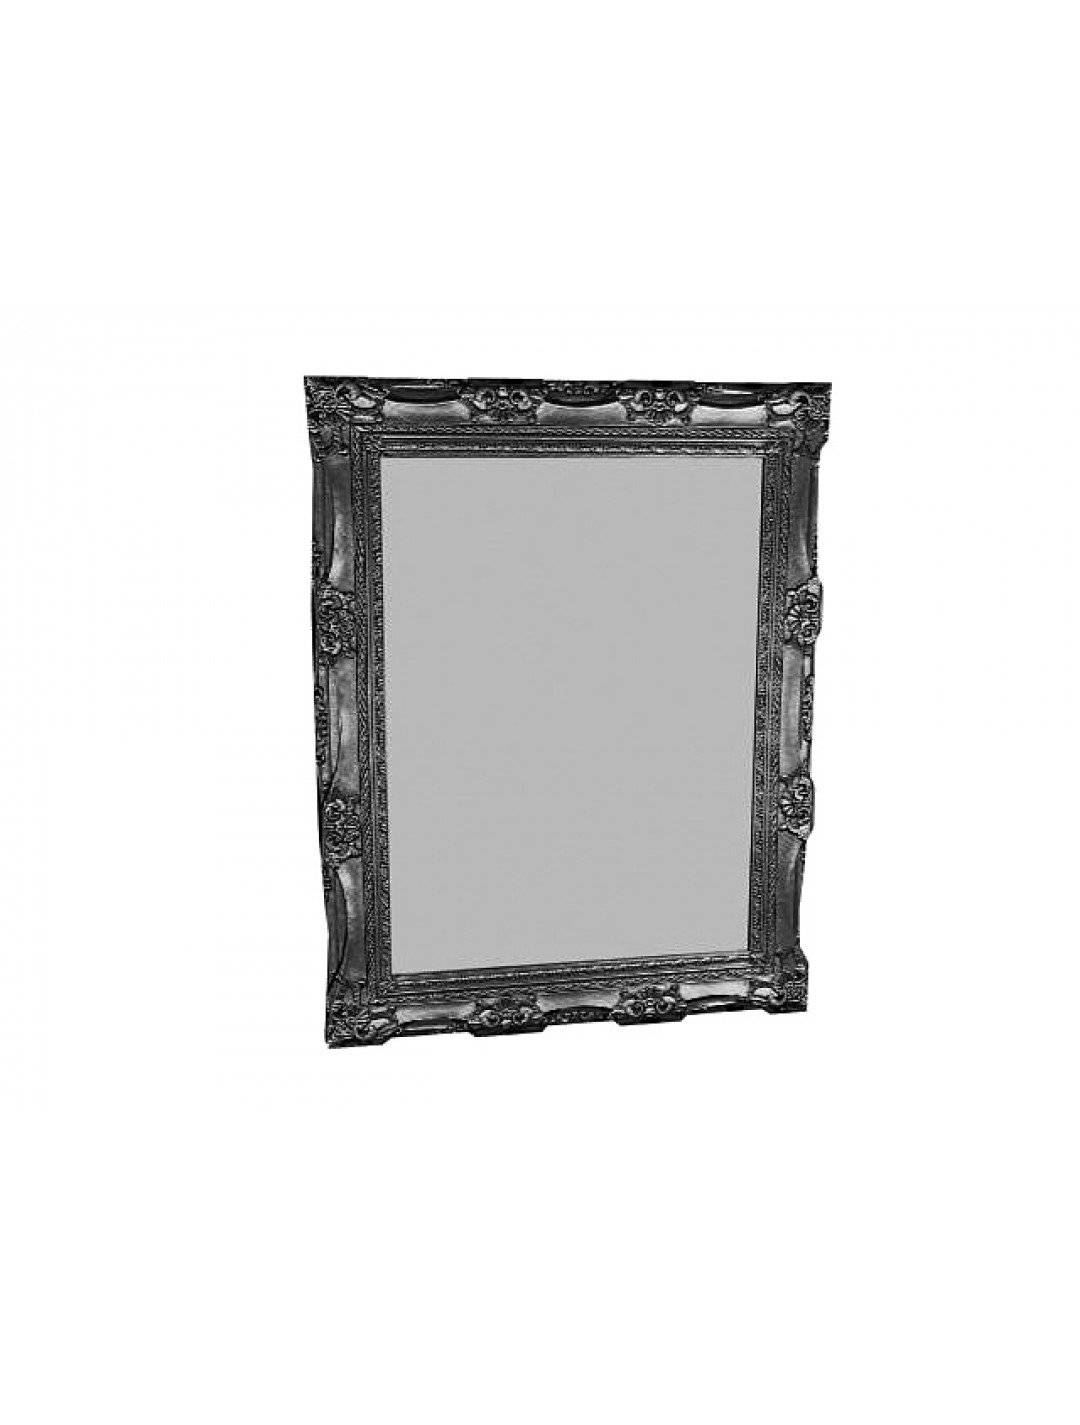 CLASSICO CARVED WOOD MIRROR, 95*120H.